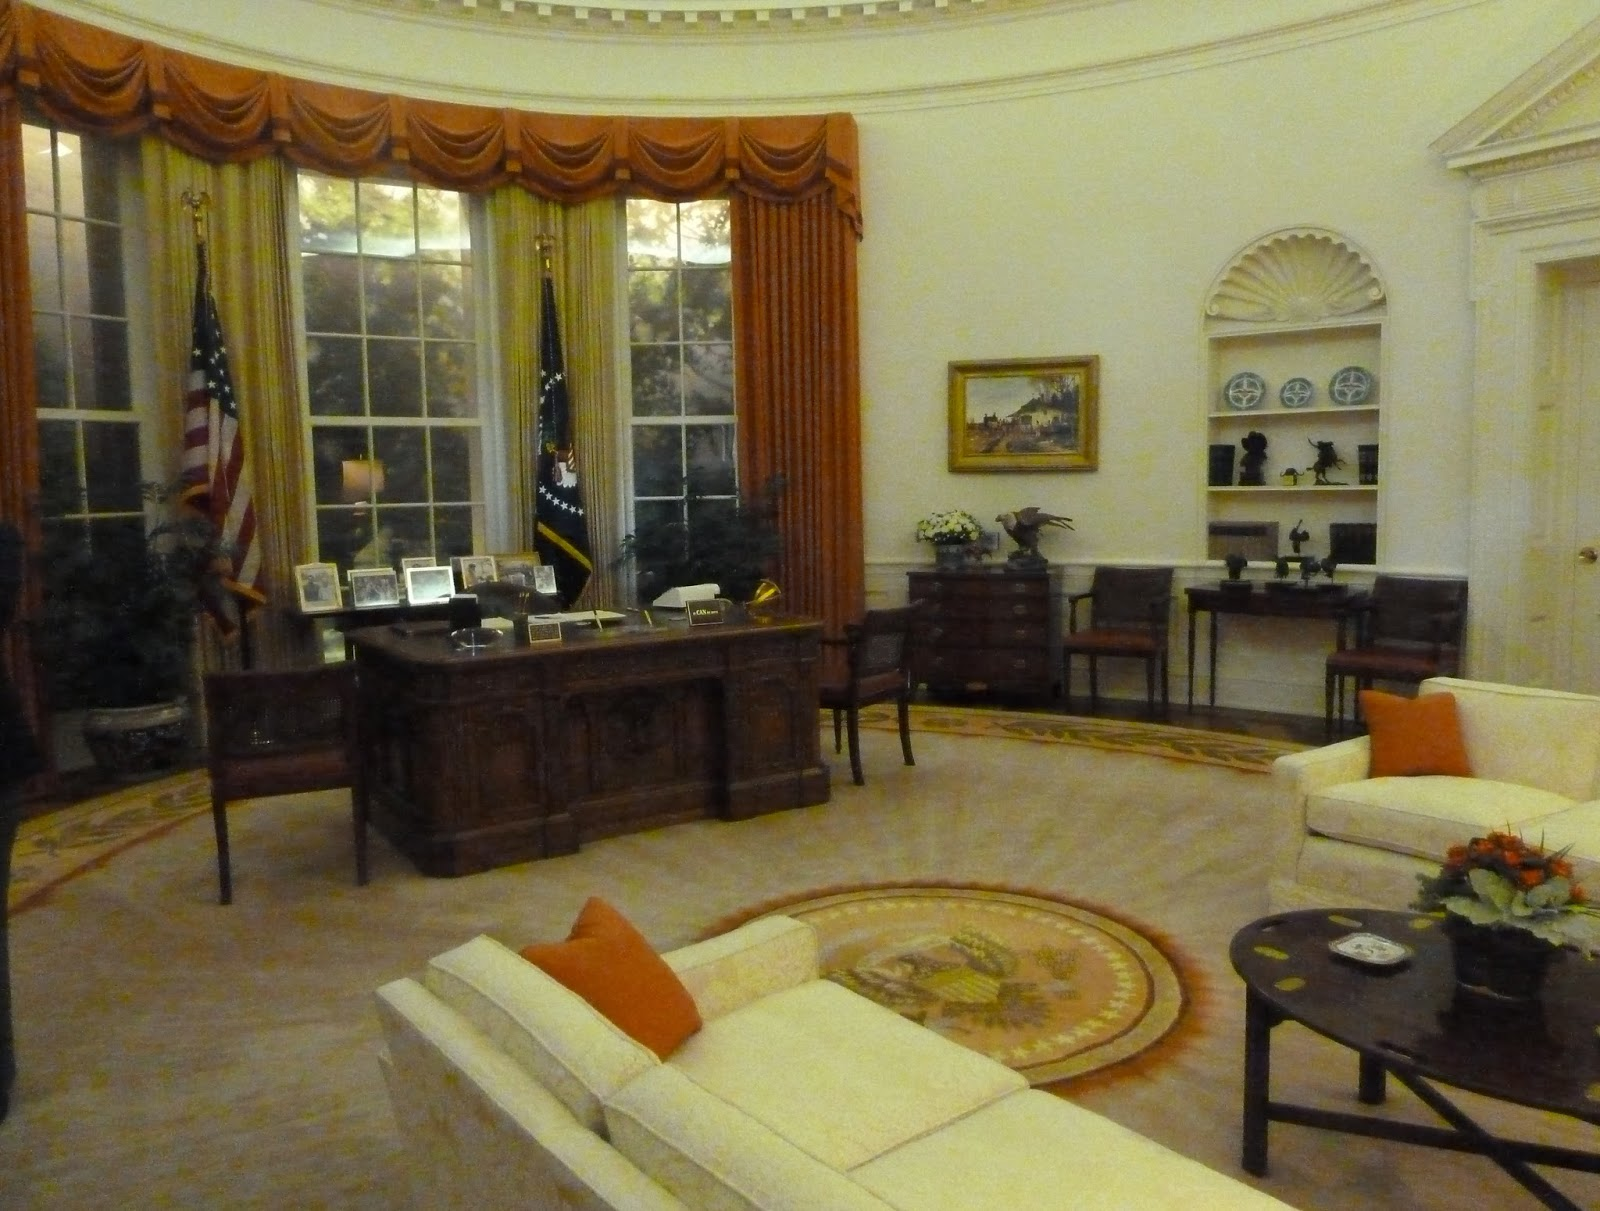 reagan oval office. Every President Has A Painting Of The First In Oval Office. Reagan Office W